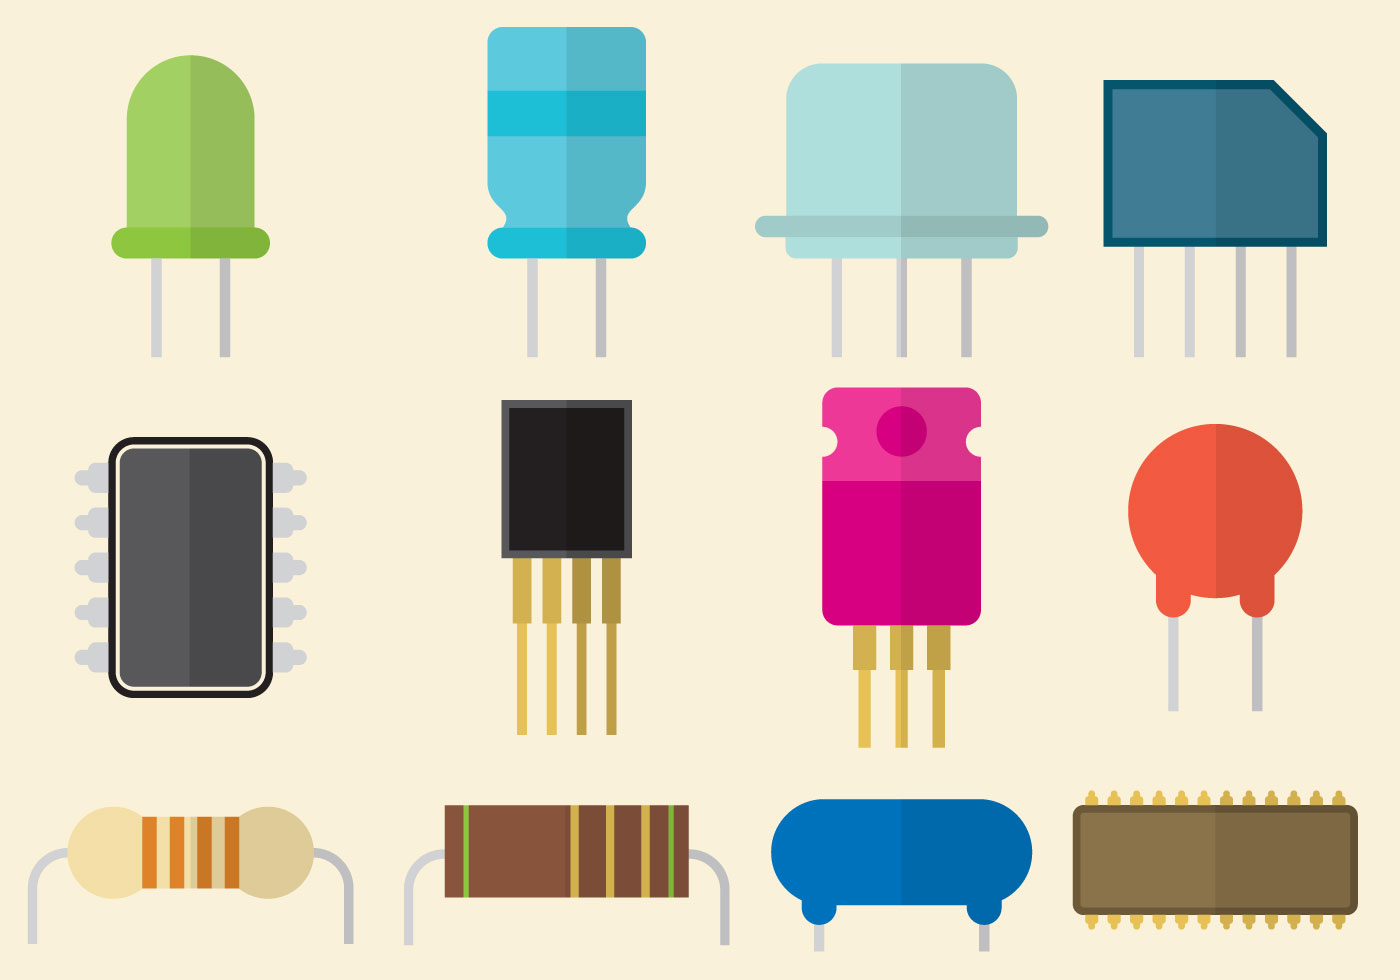 Download Free Vector Art Stock: Flat Transistor Part Vectors